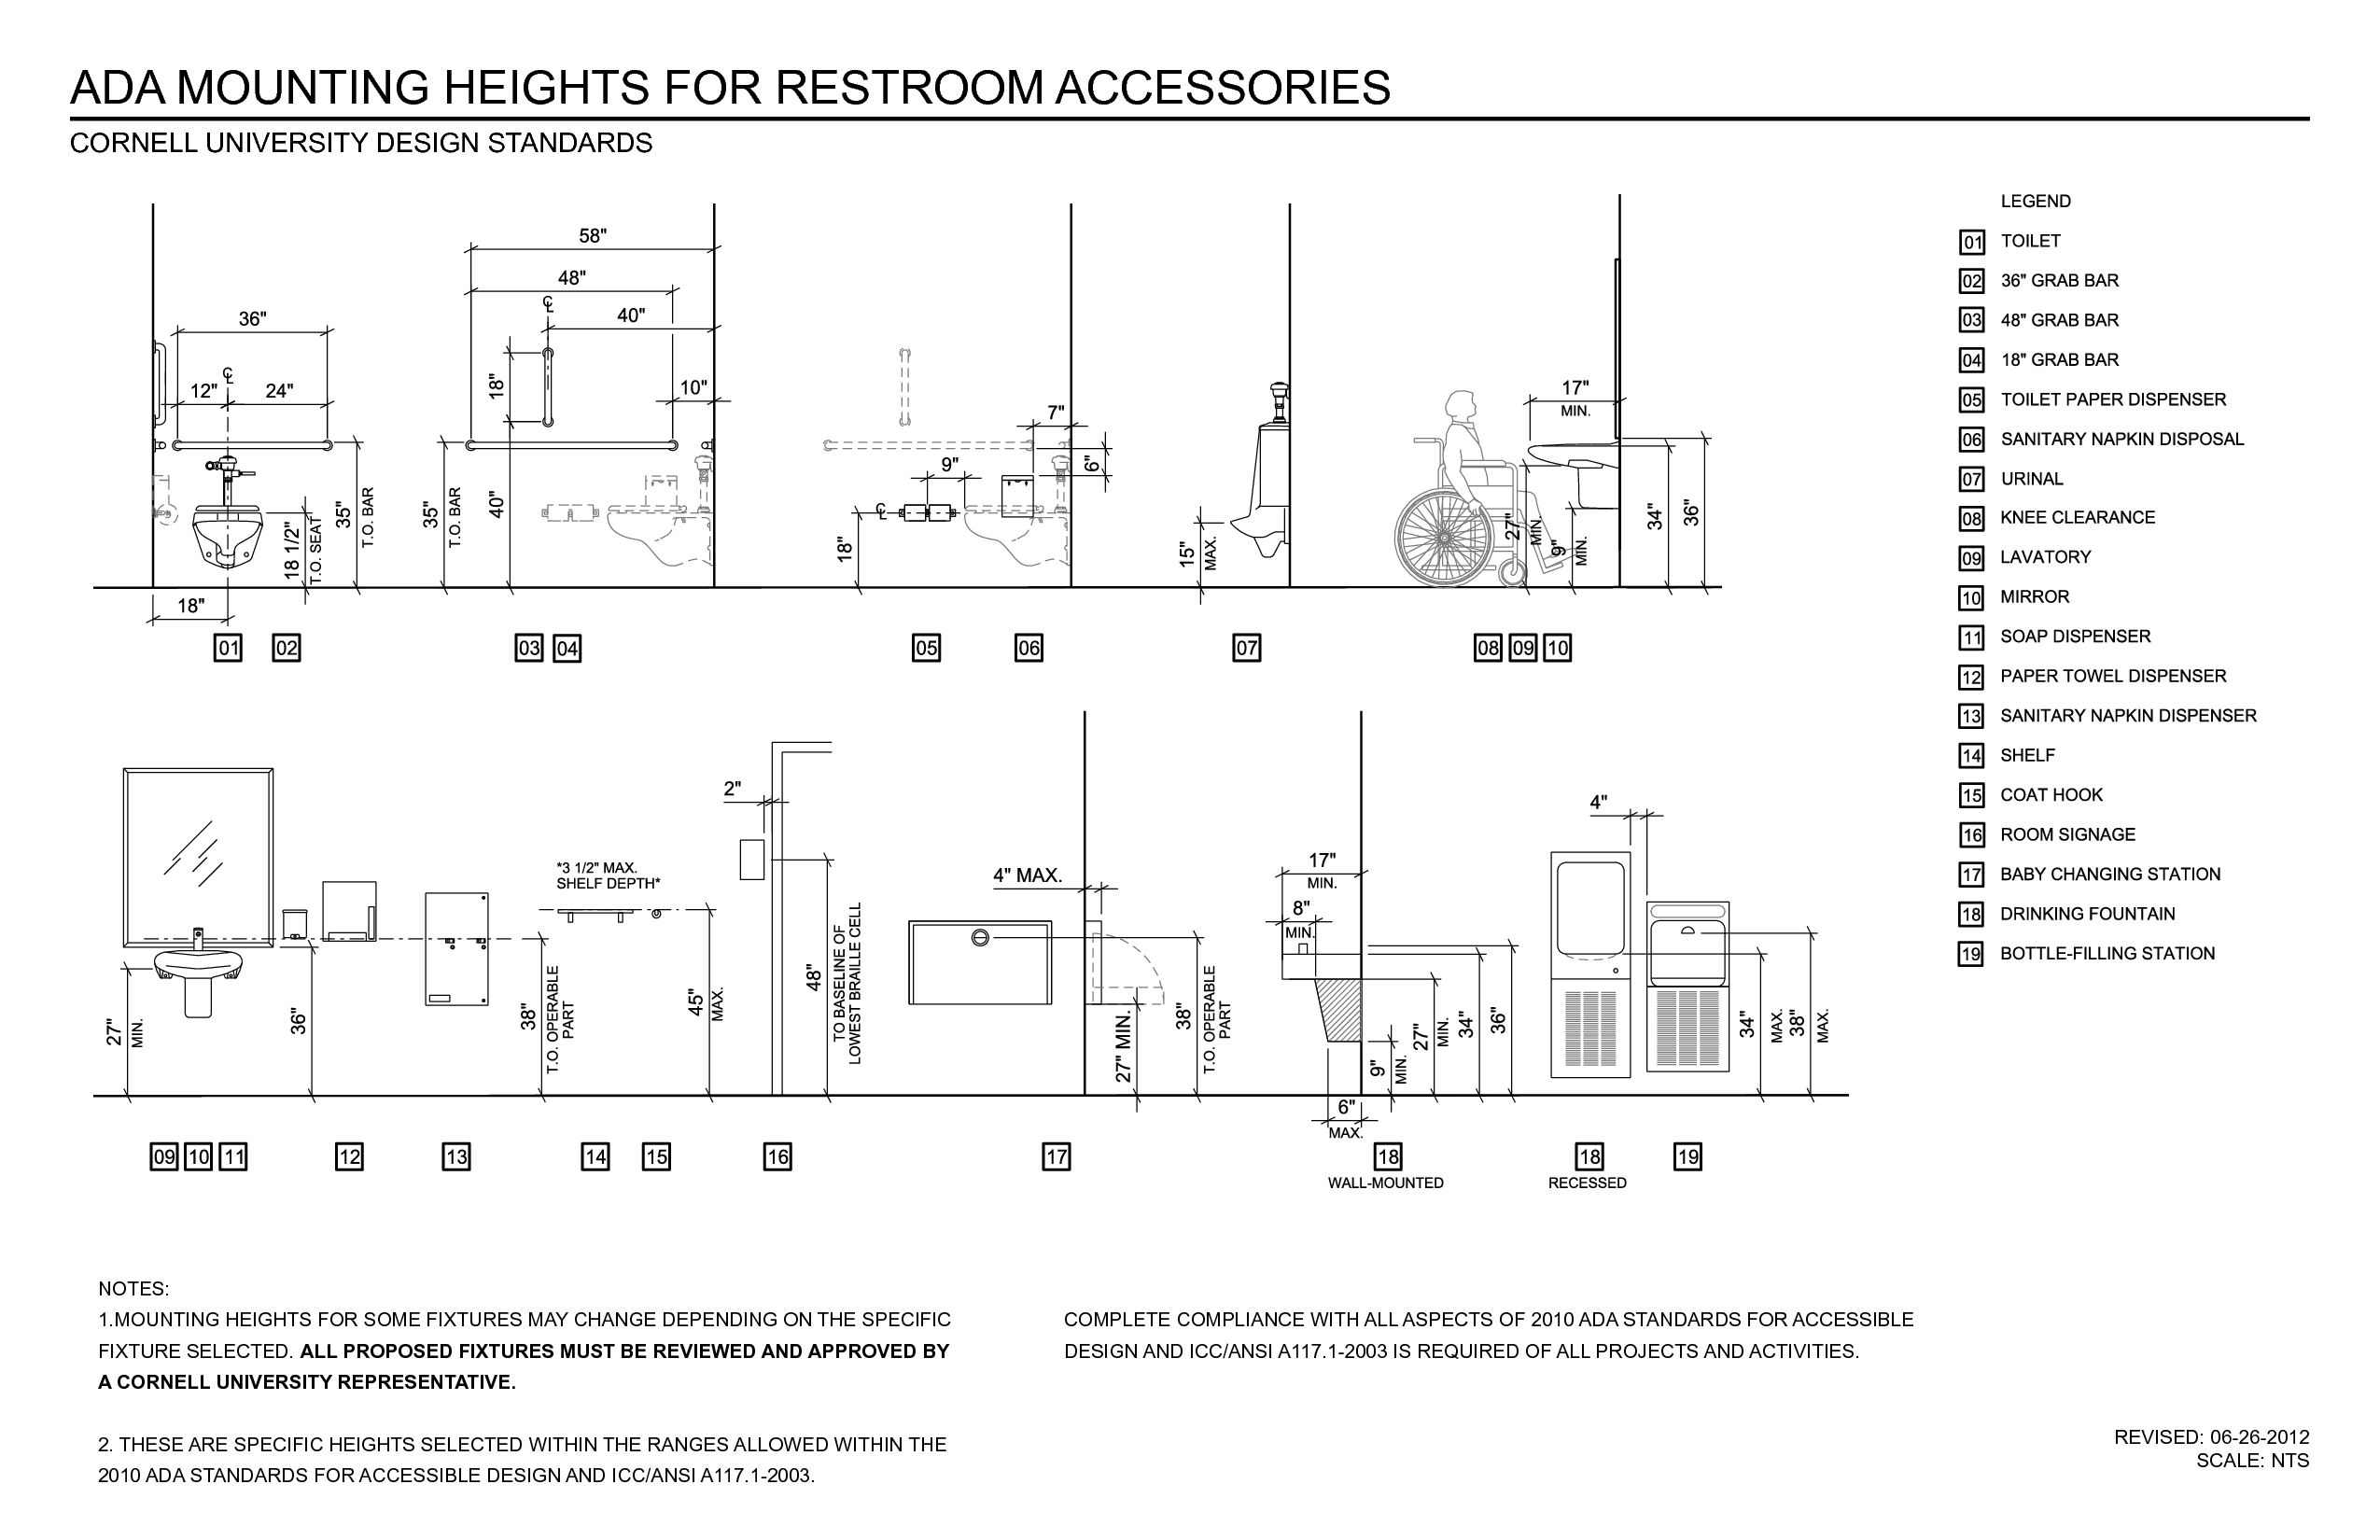 Bathroom dimensions meters - Incredible Ada Bathroom 4 Gt Bathroom Accessories Ada Mounting Heights Also Ada Bathroom Dimensions